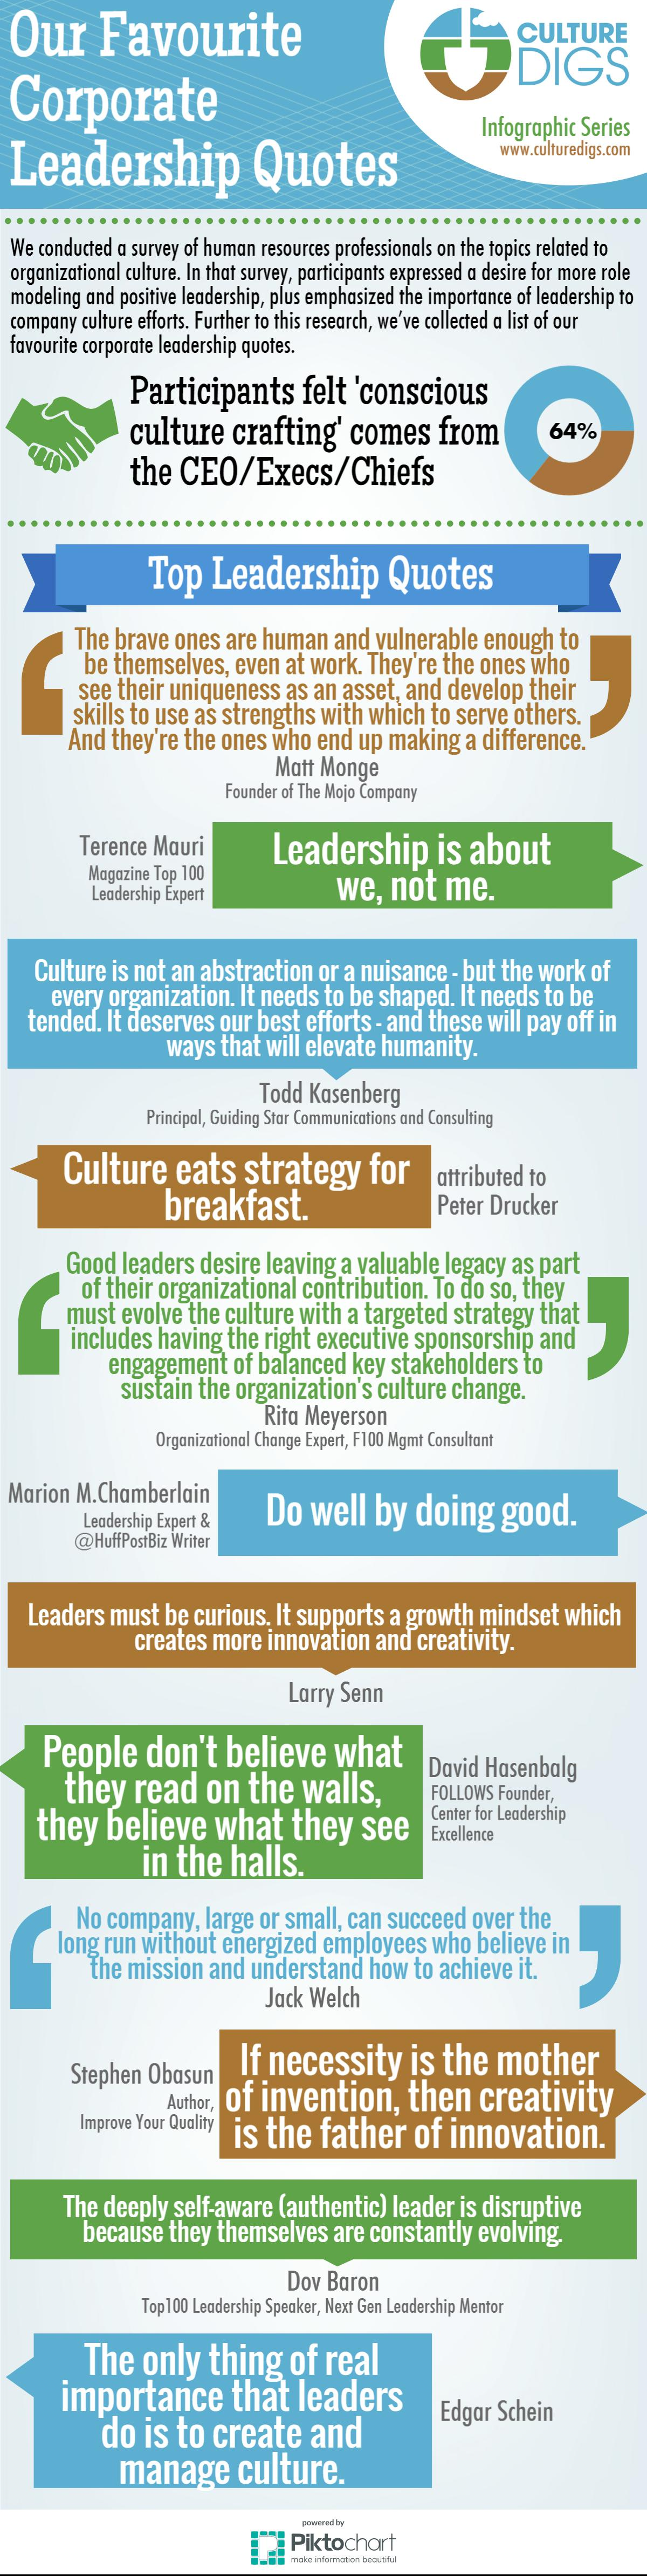 Culture Digs Infographic Quotes On Corporate Leadership